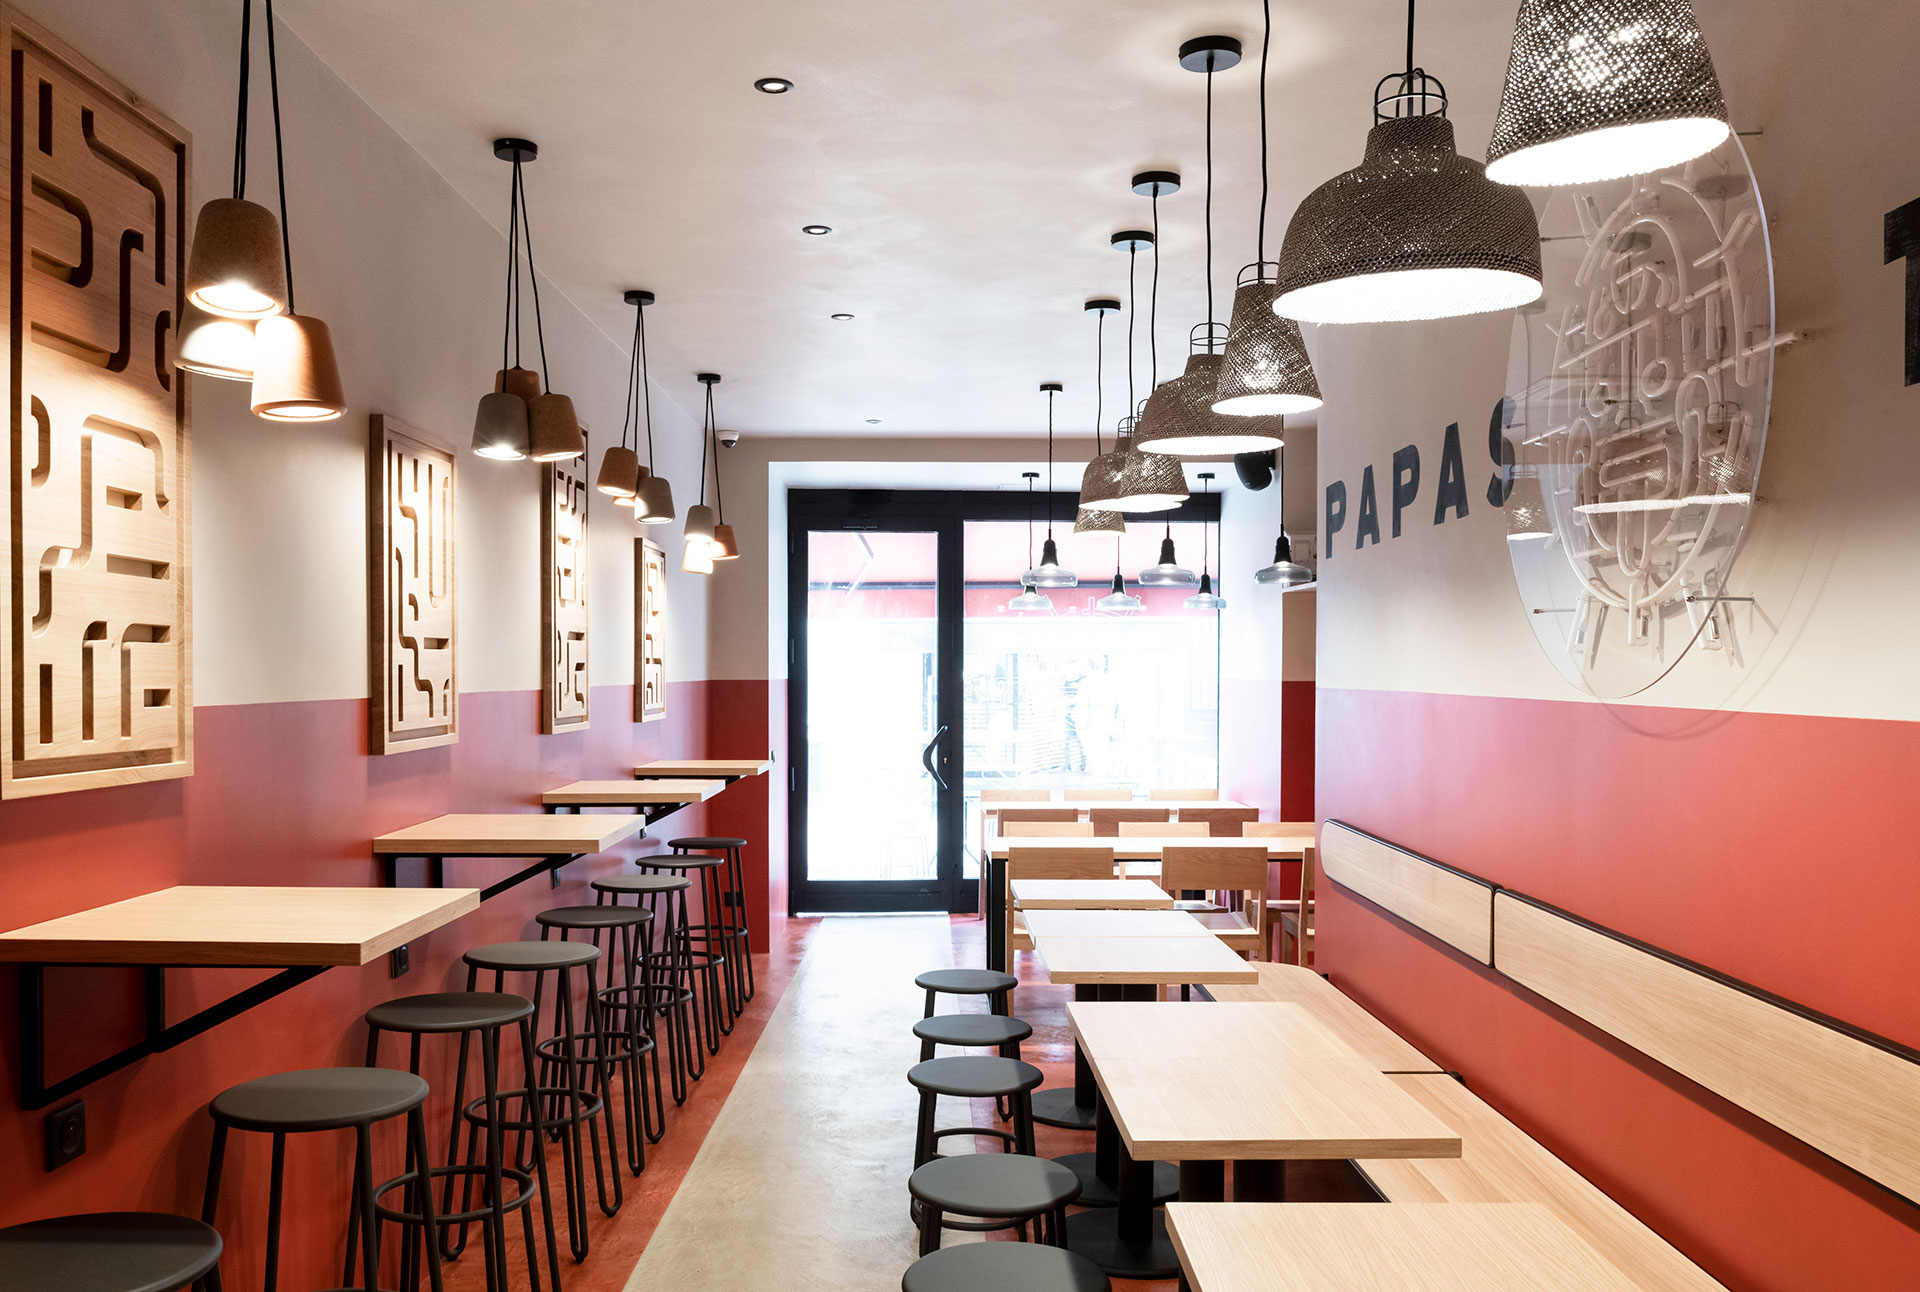 Papas Tacos - restaurant - Bordeaux - identity - interior architecture